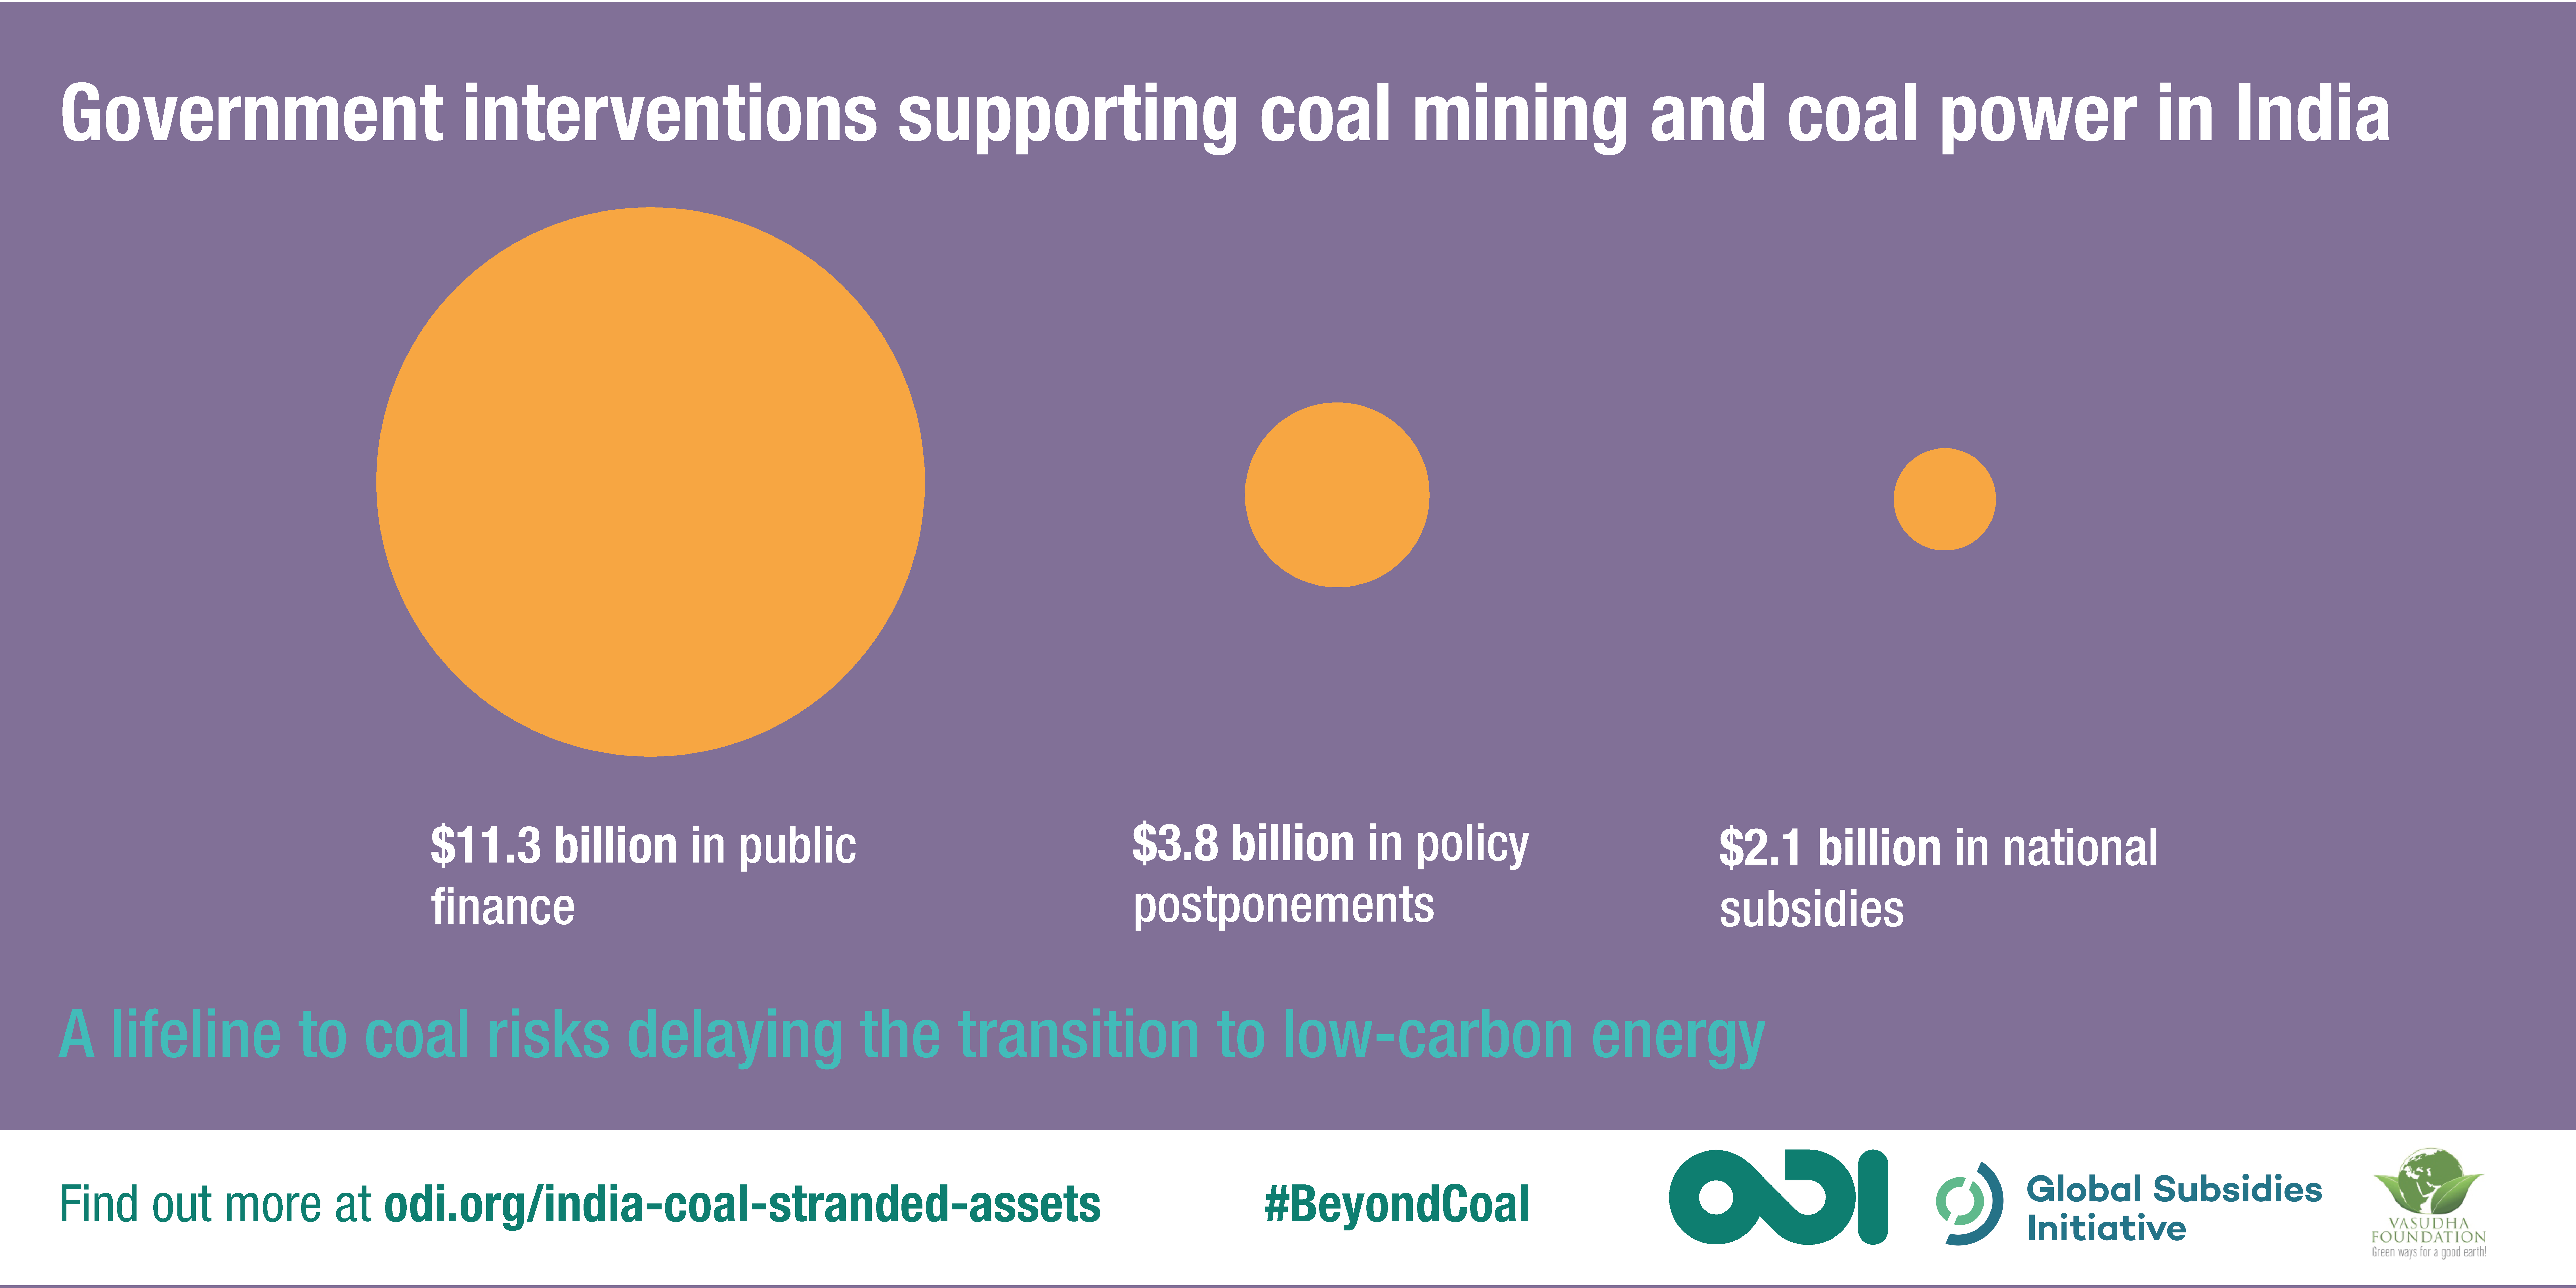 Government interventions supporting coal mining and coal power in India. Graphic: Chris Little/ODI